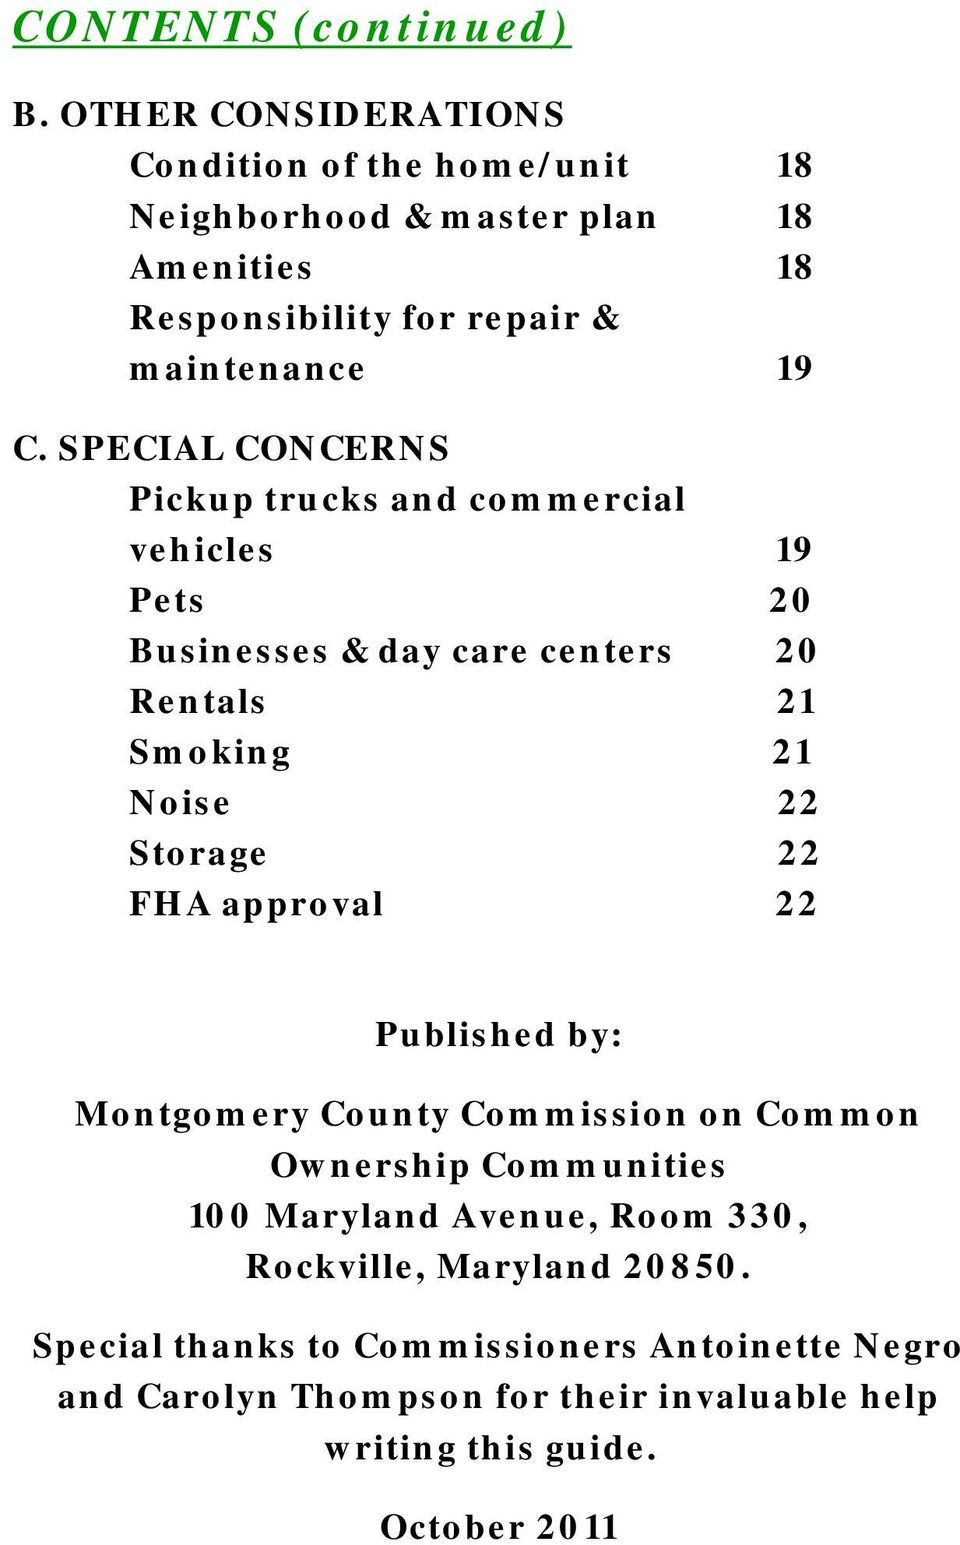 SPECIAL CONCERNS Pickup trucks and commercial vehicles 19 Pets 20 Businesses & day care centers 20 Rentals 21 Smoking 21 Noise 22 Storage 22 FHA